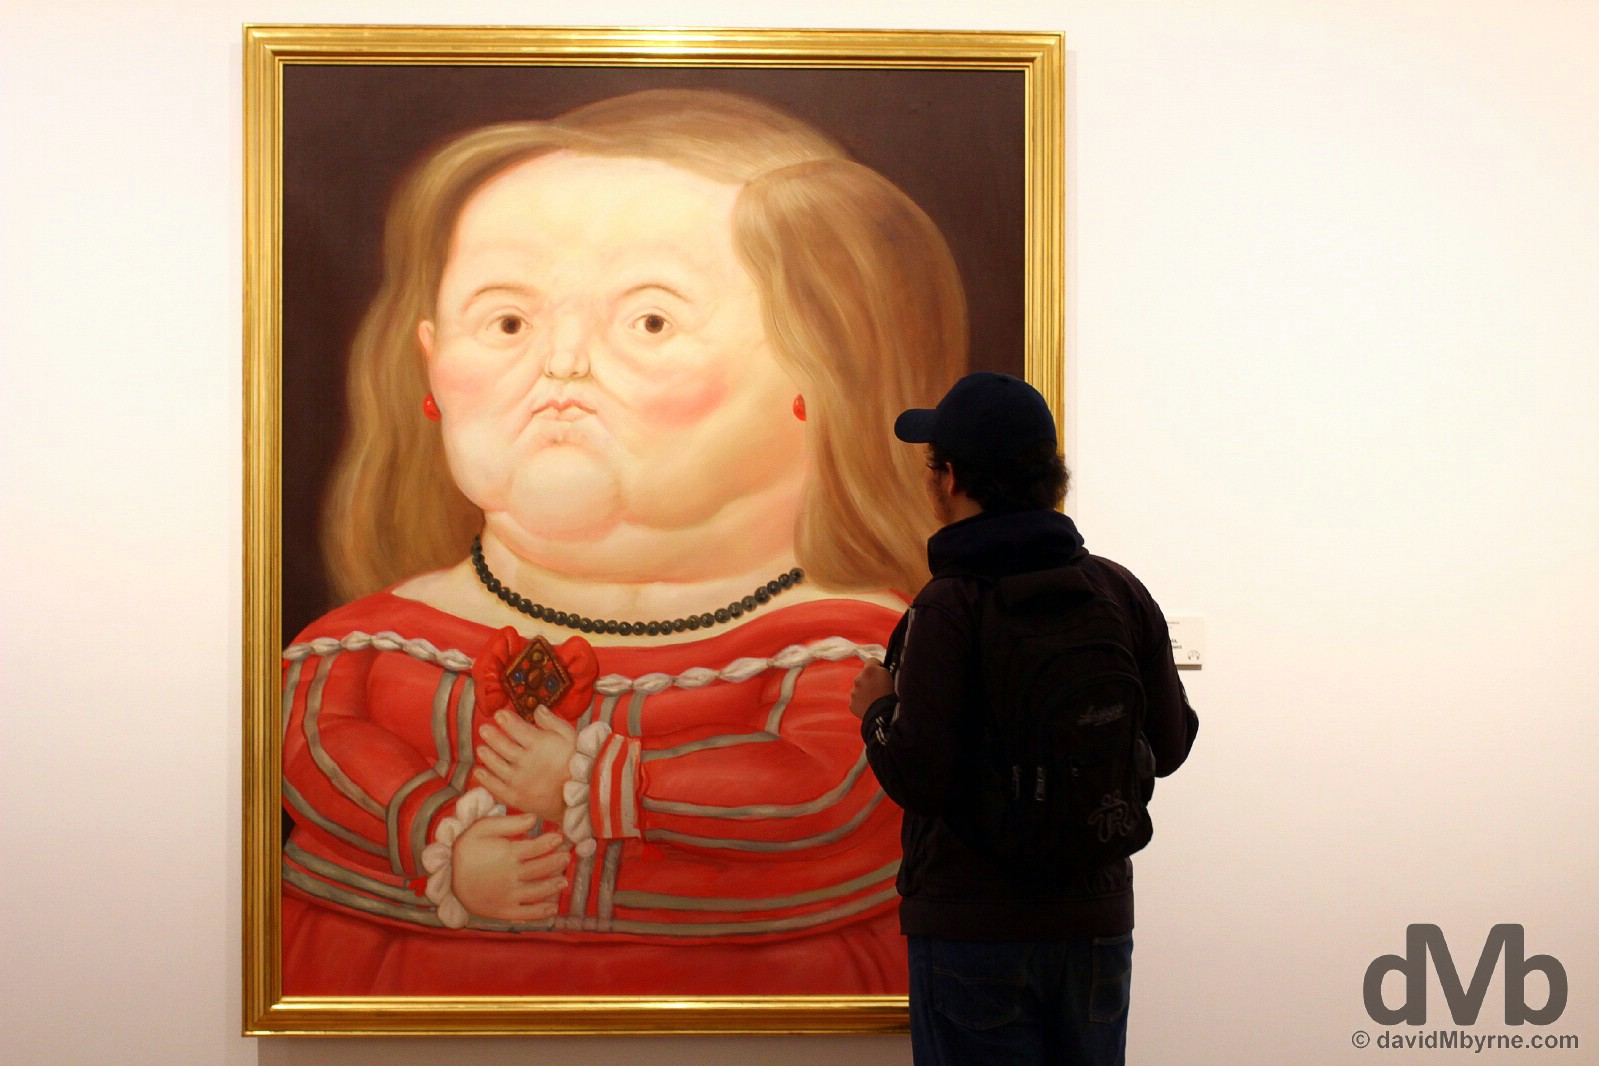 Admiring the piece 'Maribarbola, segun Velazquez' by Fernando Botero in the Museo Botero, Bogota, Colombia. June 28, 2015.